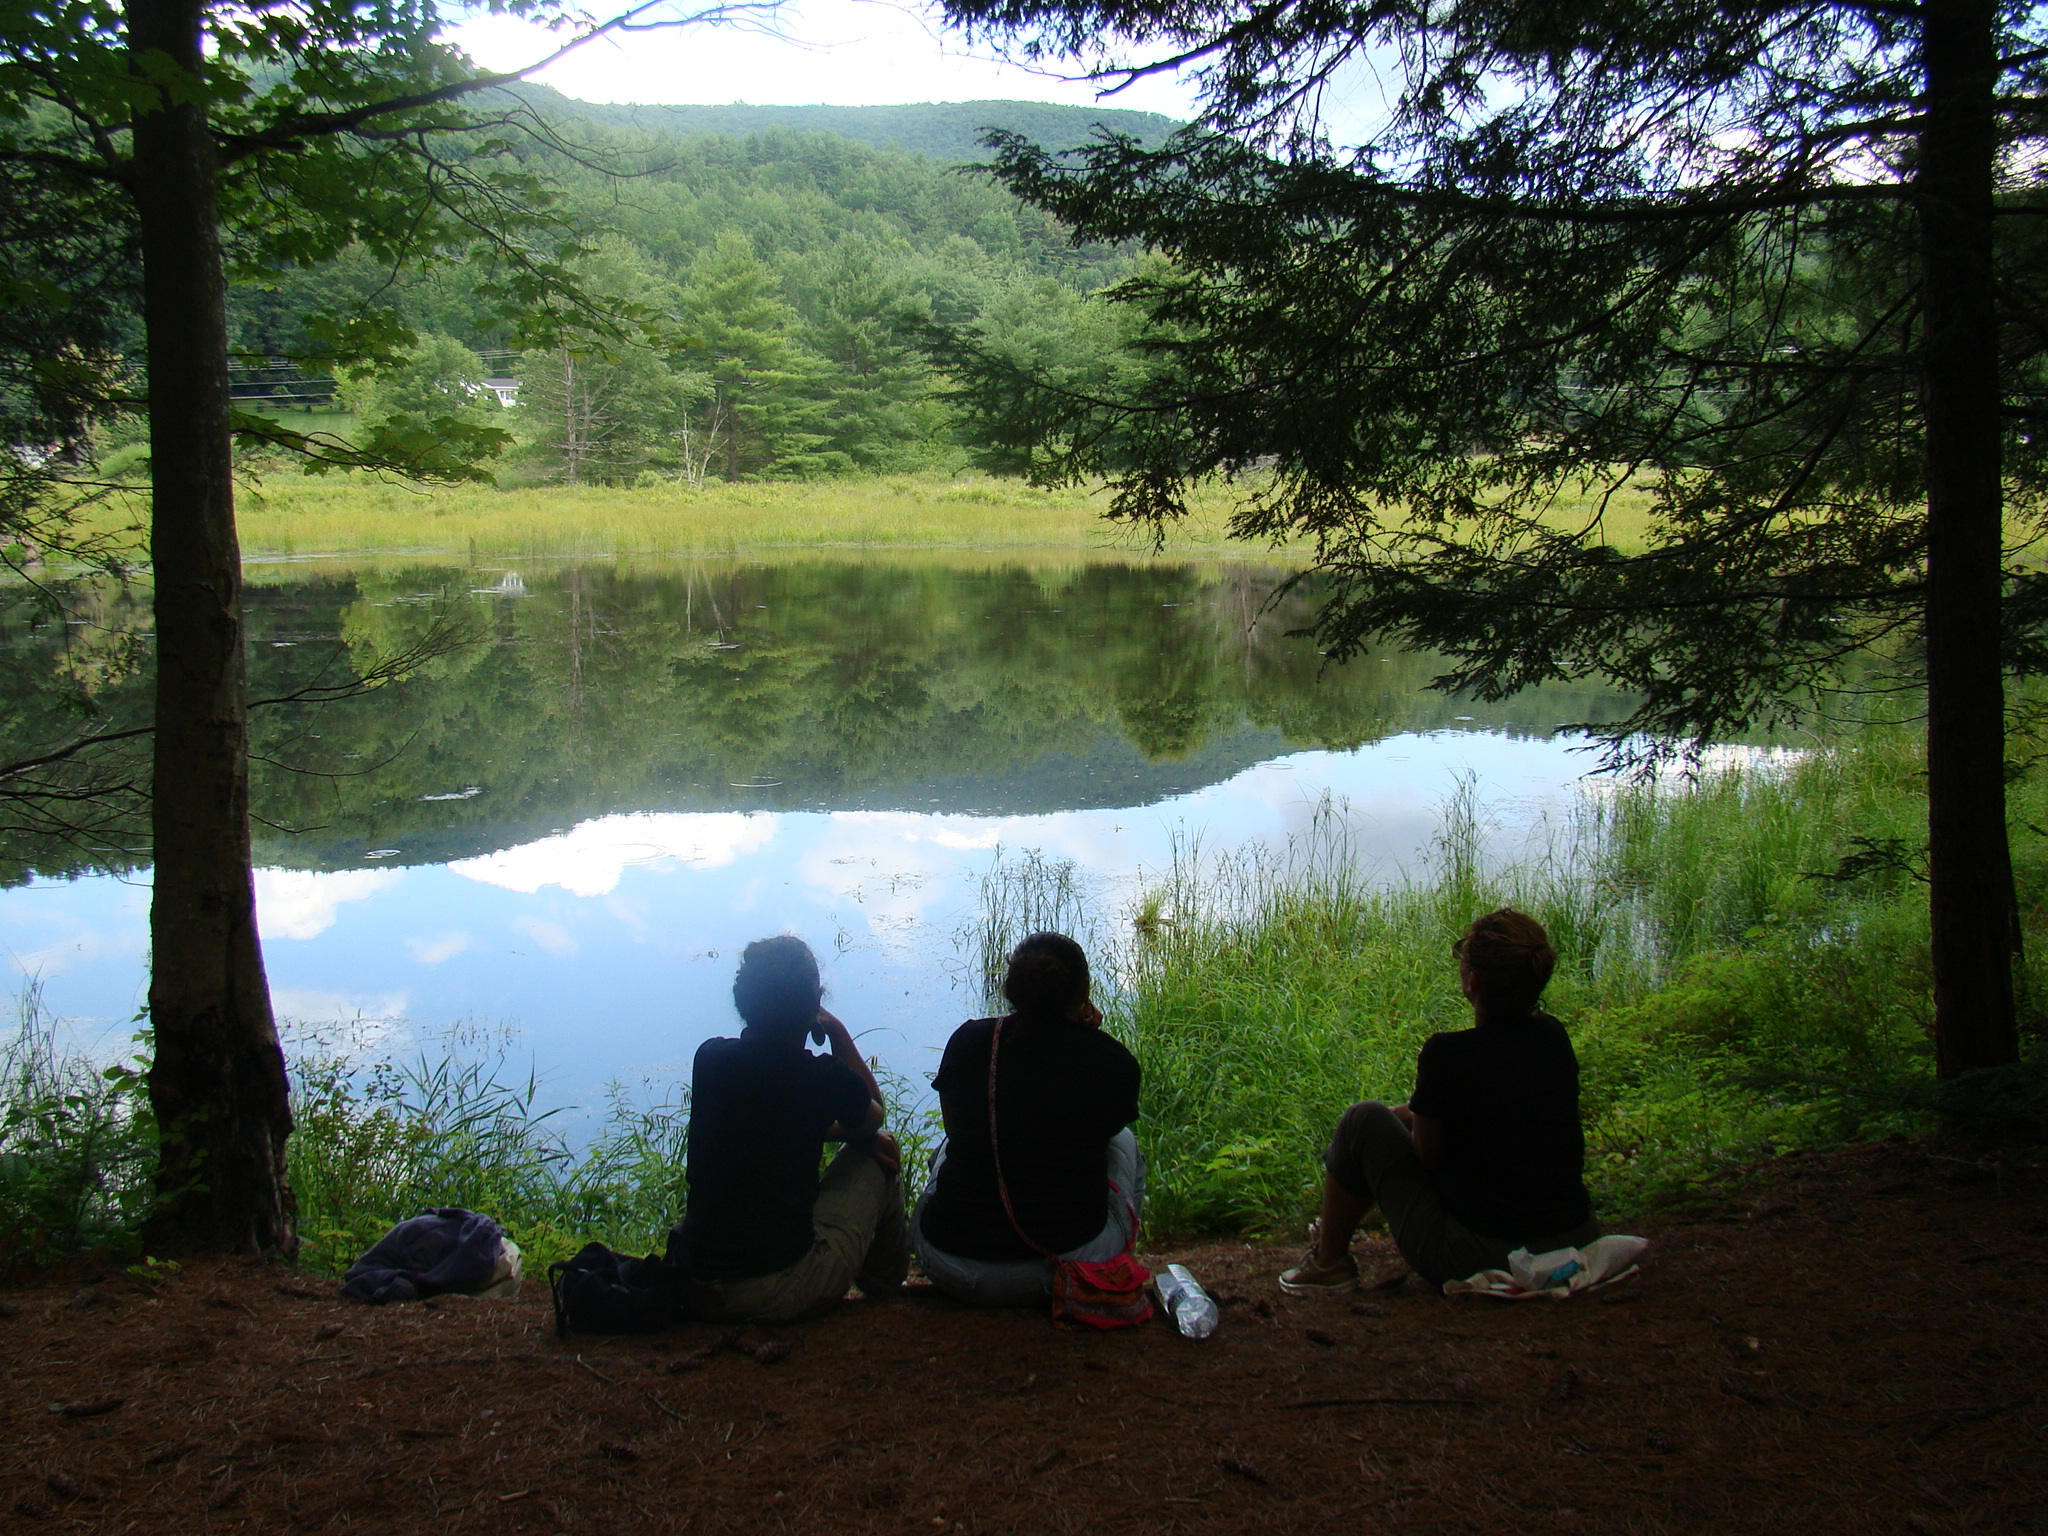 Taking a break on our hike by beaver pond- the frogs were talking to us:)